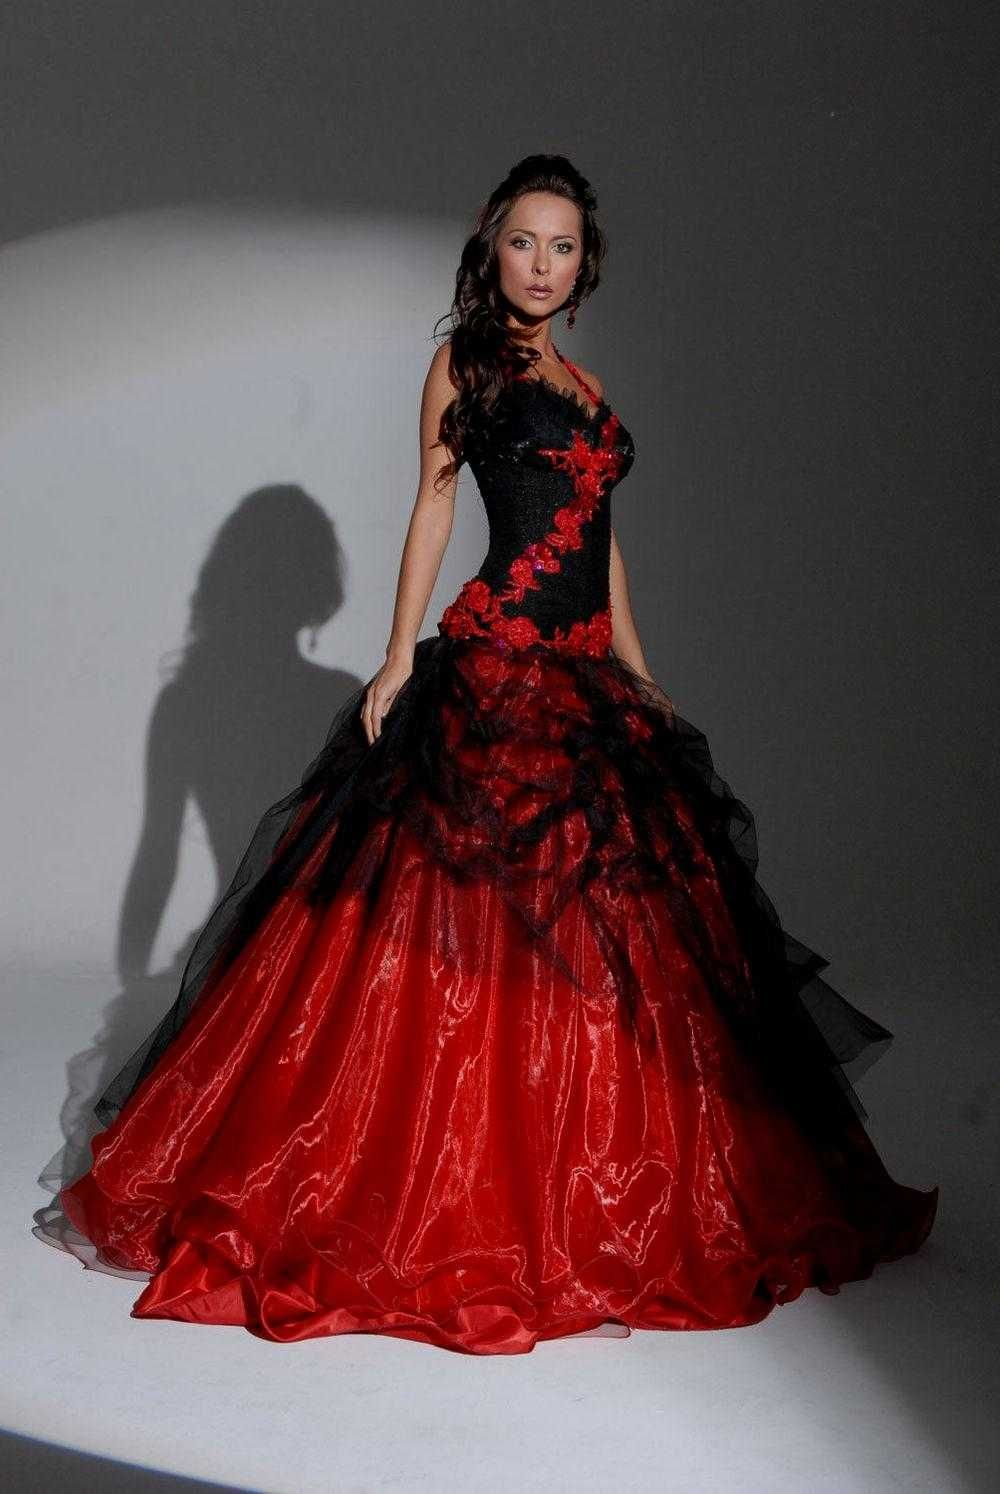 Red and lace black bridesmaid dress recommend to wear for everyday in 2019